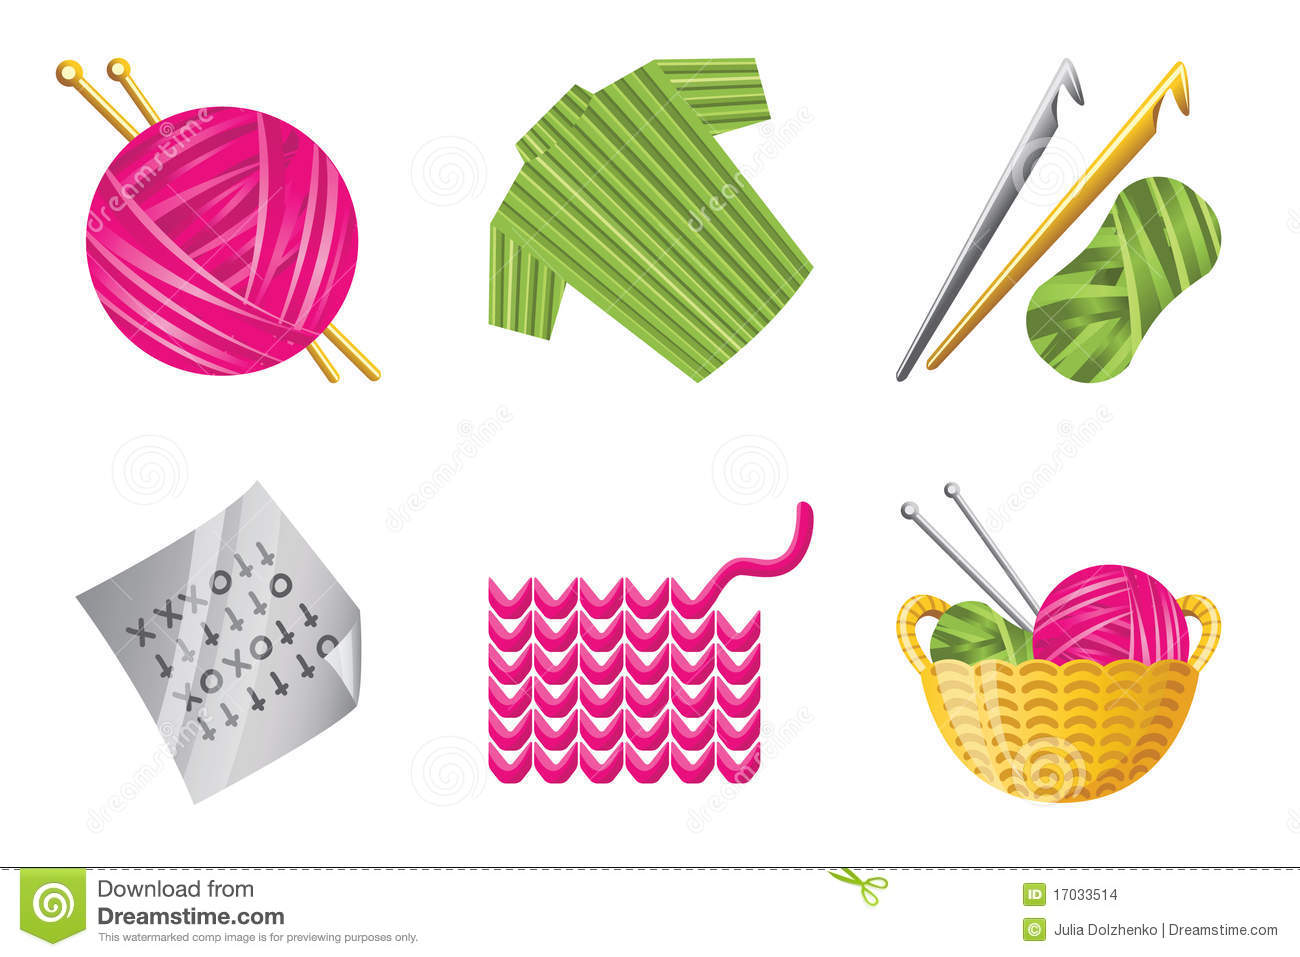 Crochet Stitches Vector : crochet and knitting hobby include yarn cardigan crochet hooks stitch ...